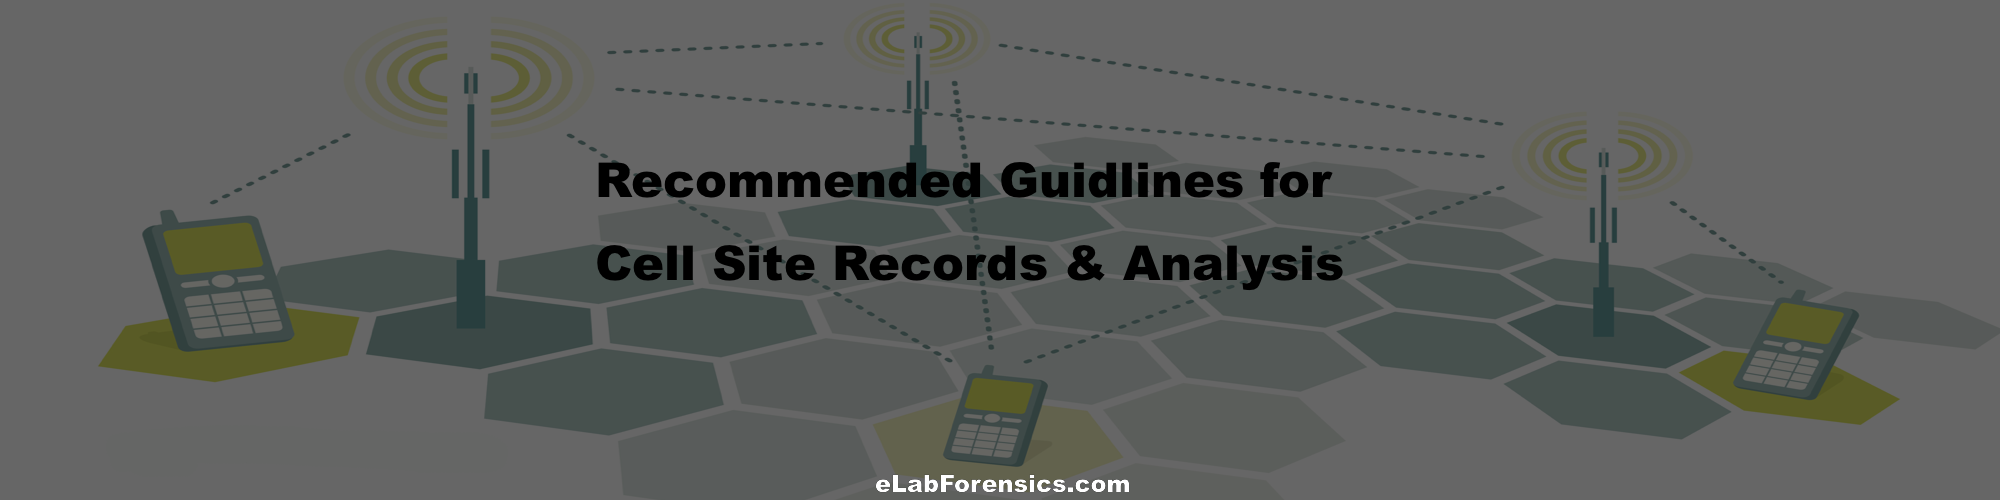 Forensic Guidelines for Cell Site Records and Analysis